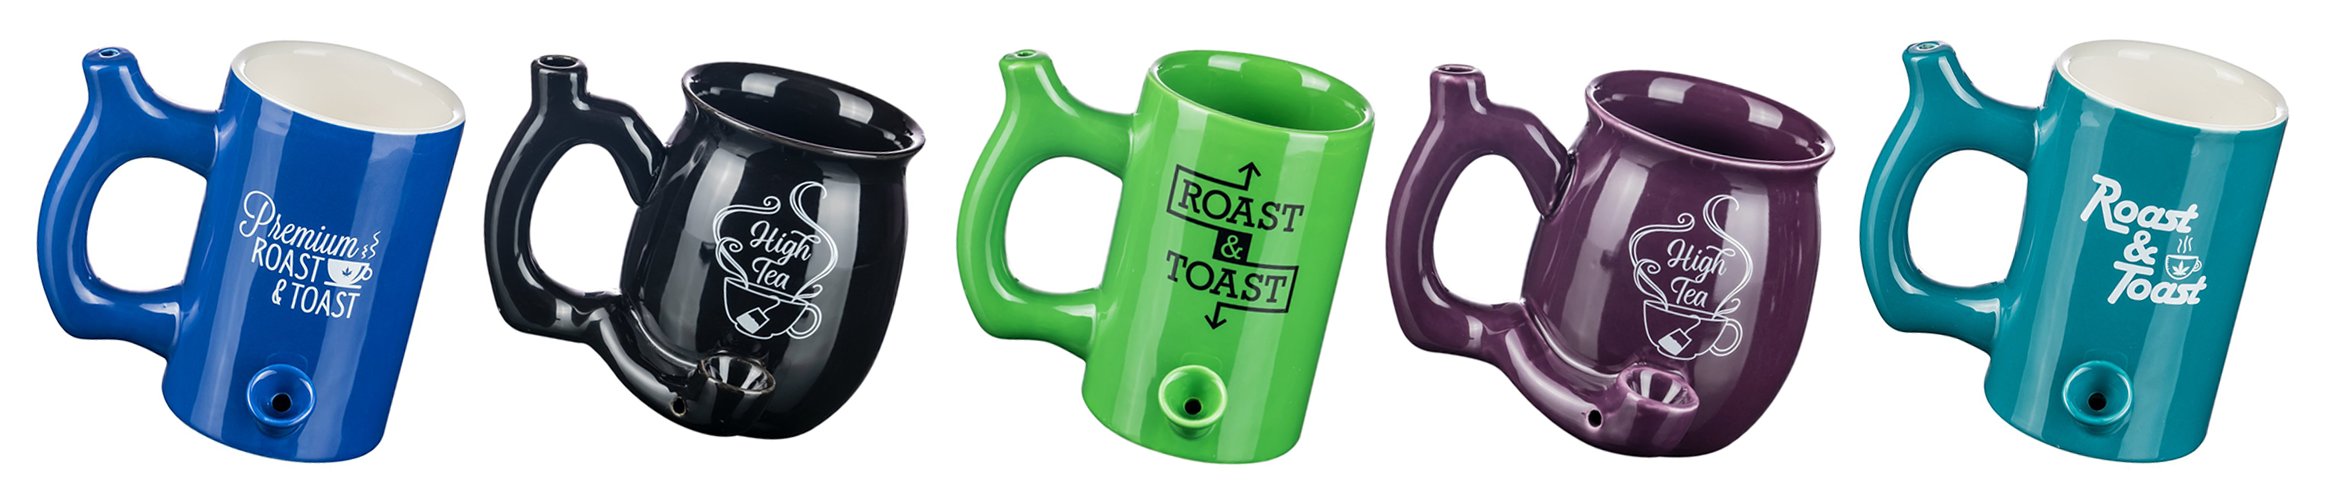 Grab this tea and coffee cup pipe and you can wake and bake right from your tea cup or mug, multiple colors to choose from.